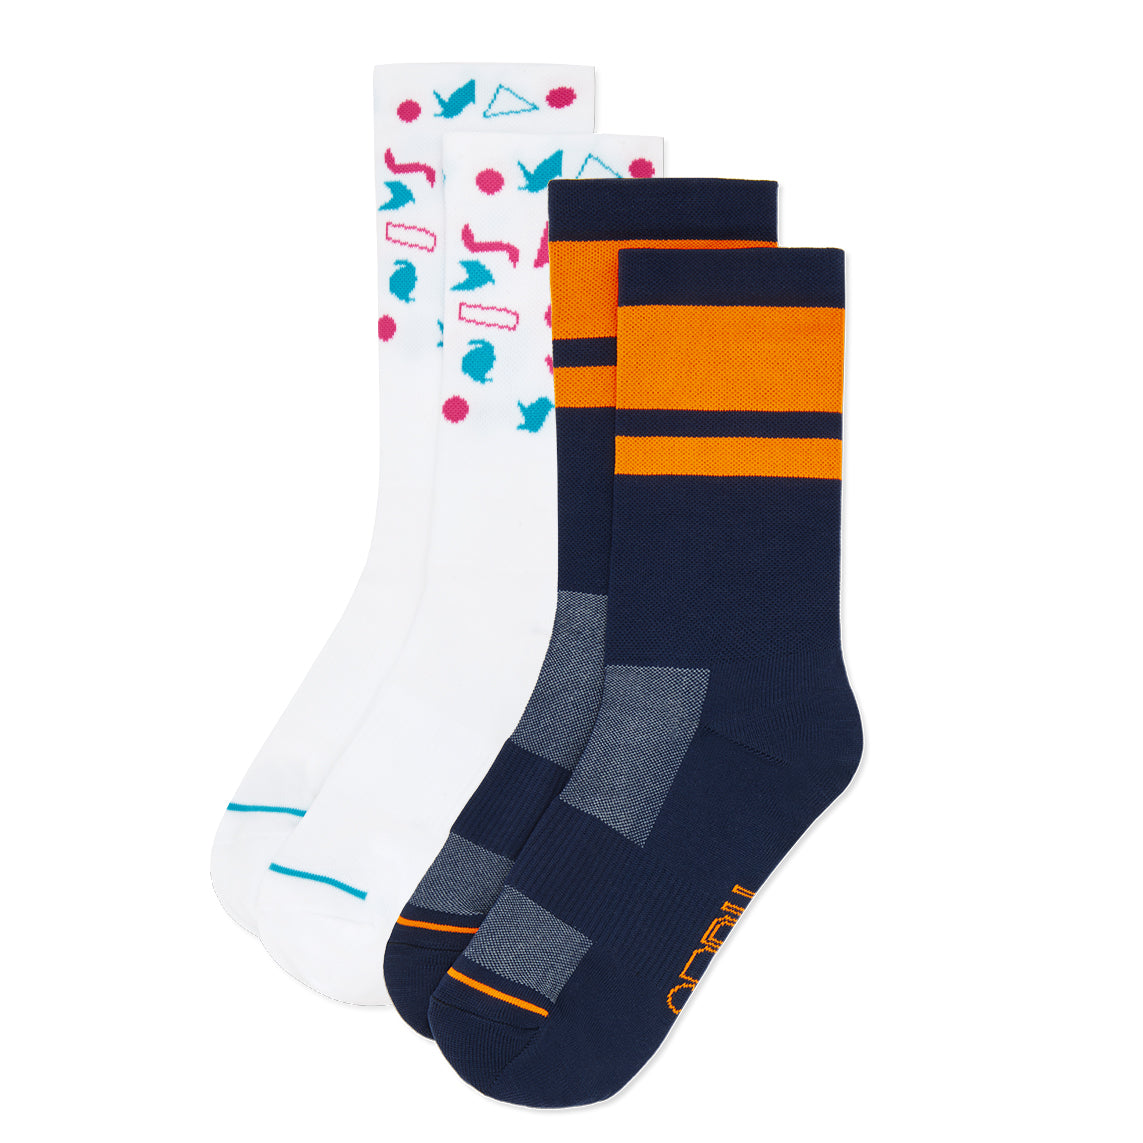 Cycling sock bundle